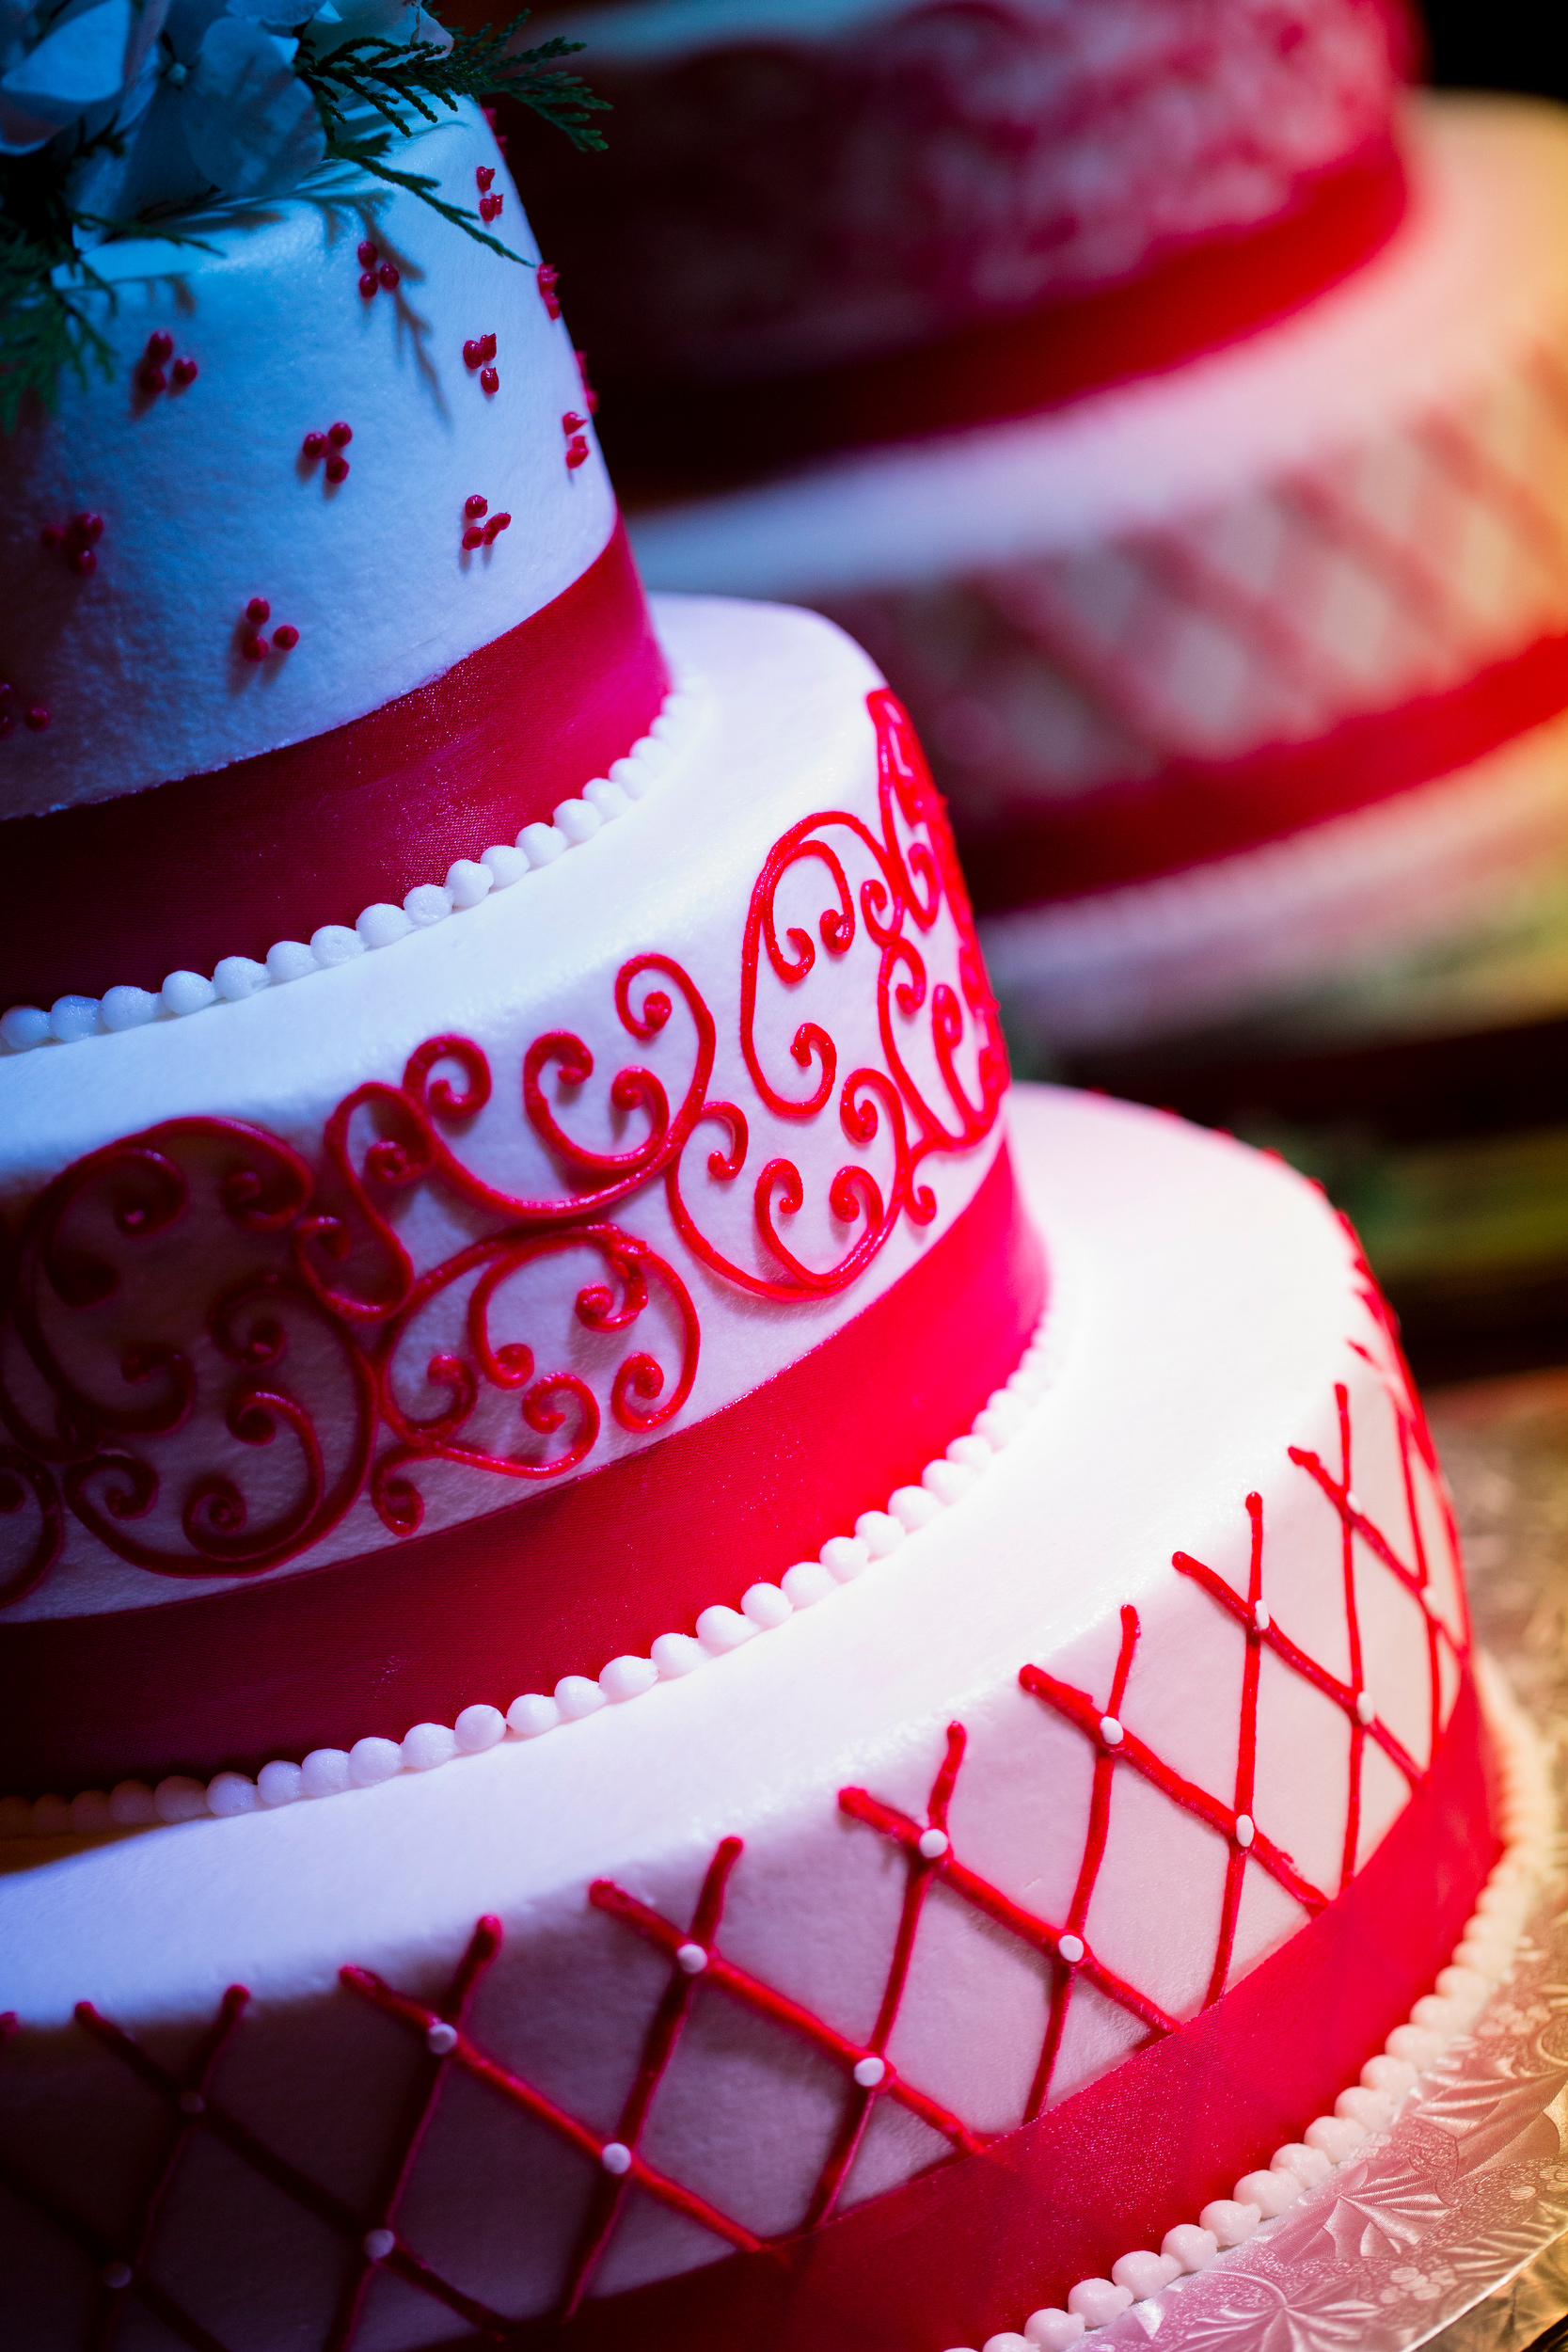 4k Wedding Cakes Wallpapers High Quality Download Free